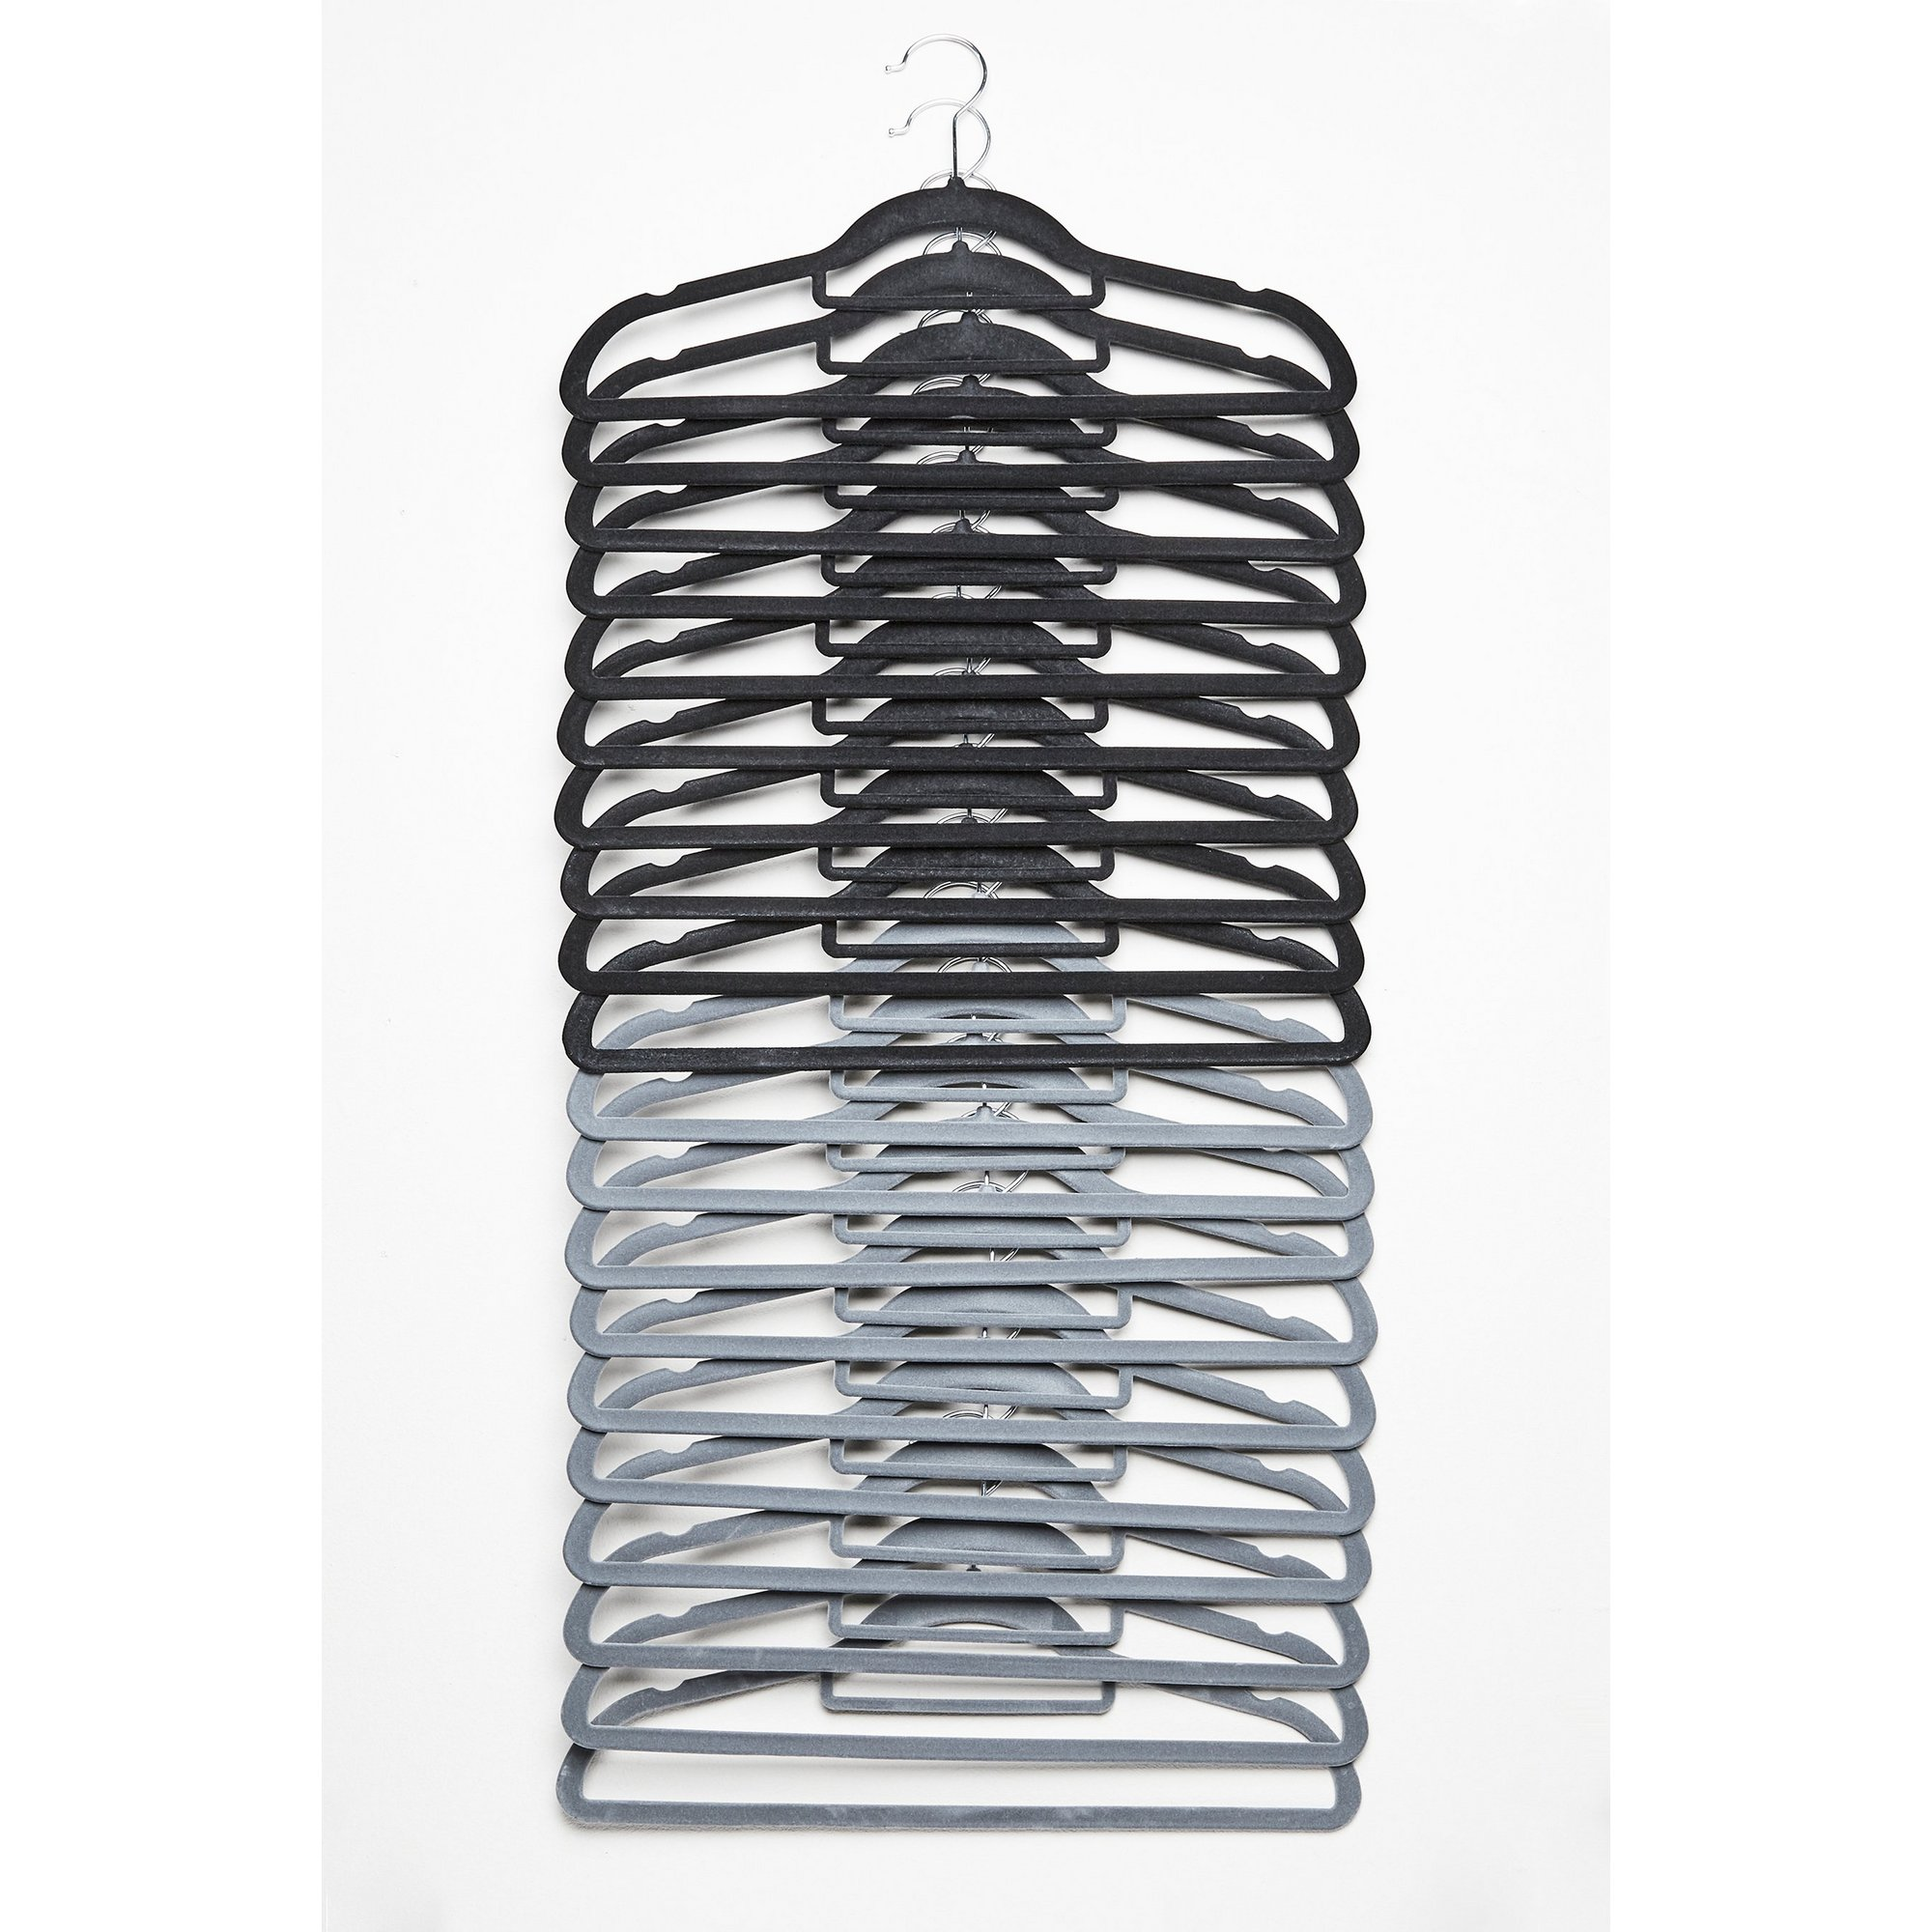 Image of 20 Velvet Grey and Black Clothes Hangers